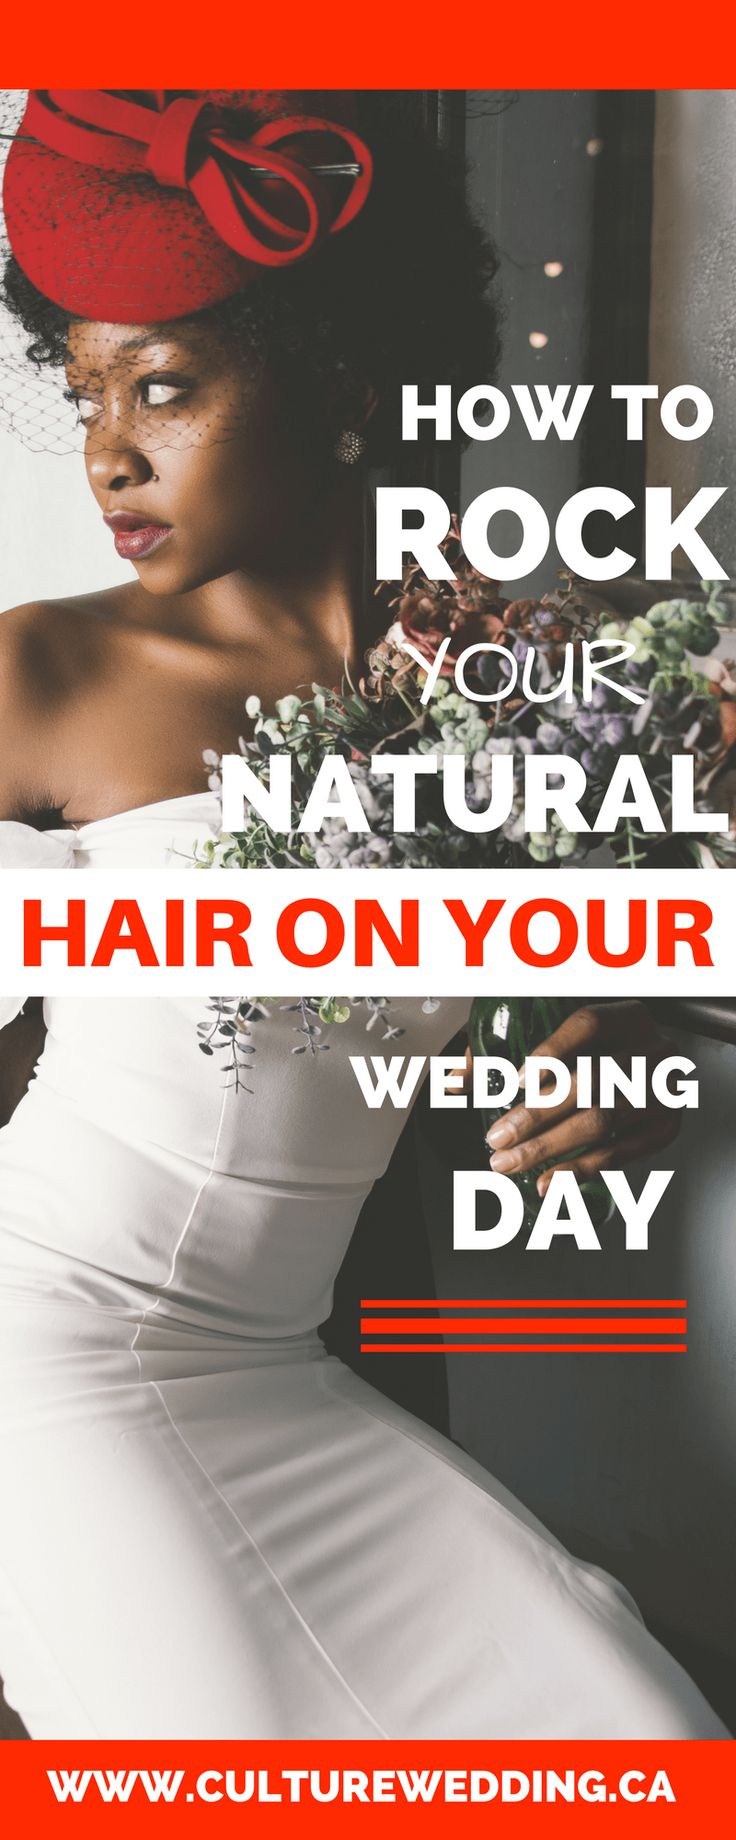 How to rock your natural hair on your wedding day, black wedding hairstyles, wedding hairstyles for black people. Natural hairstyles, How to style your natural hair for your wedding. Natural hair products. Natural hair styles for black women. Protective hairstyles for black women. natural hair style for black women and women of color #naturalhair #curlyhair #blackhair